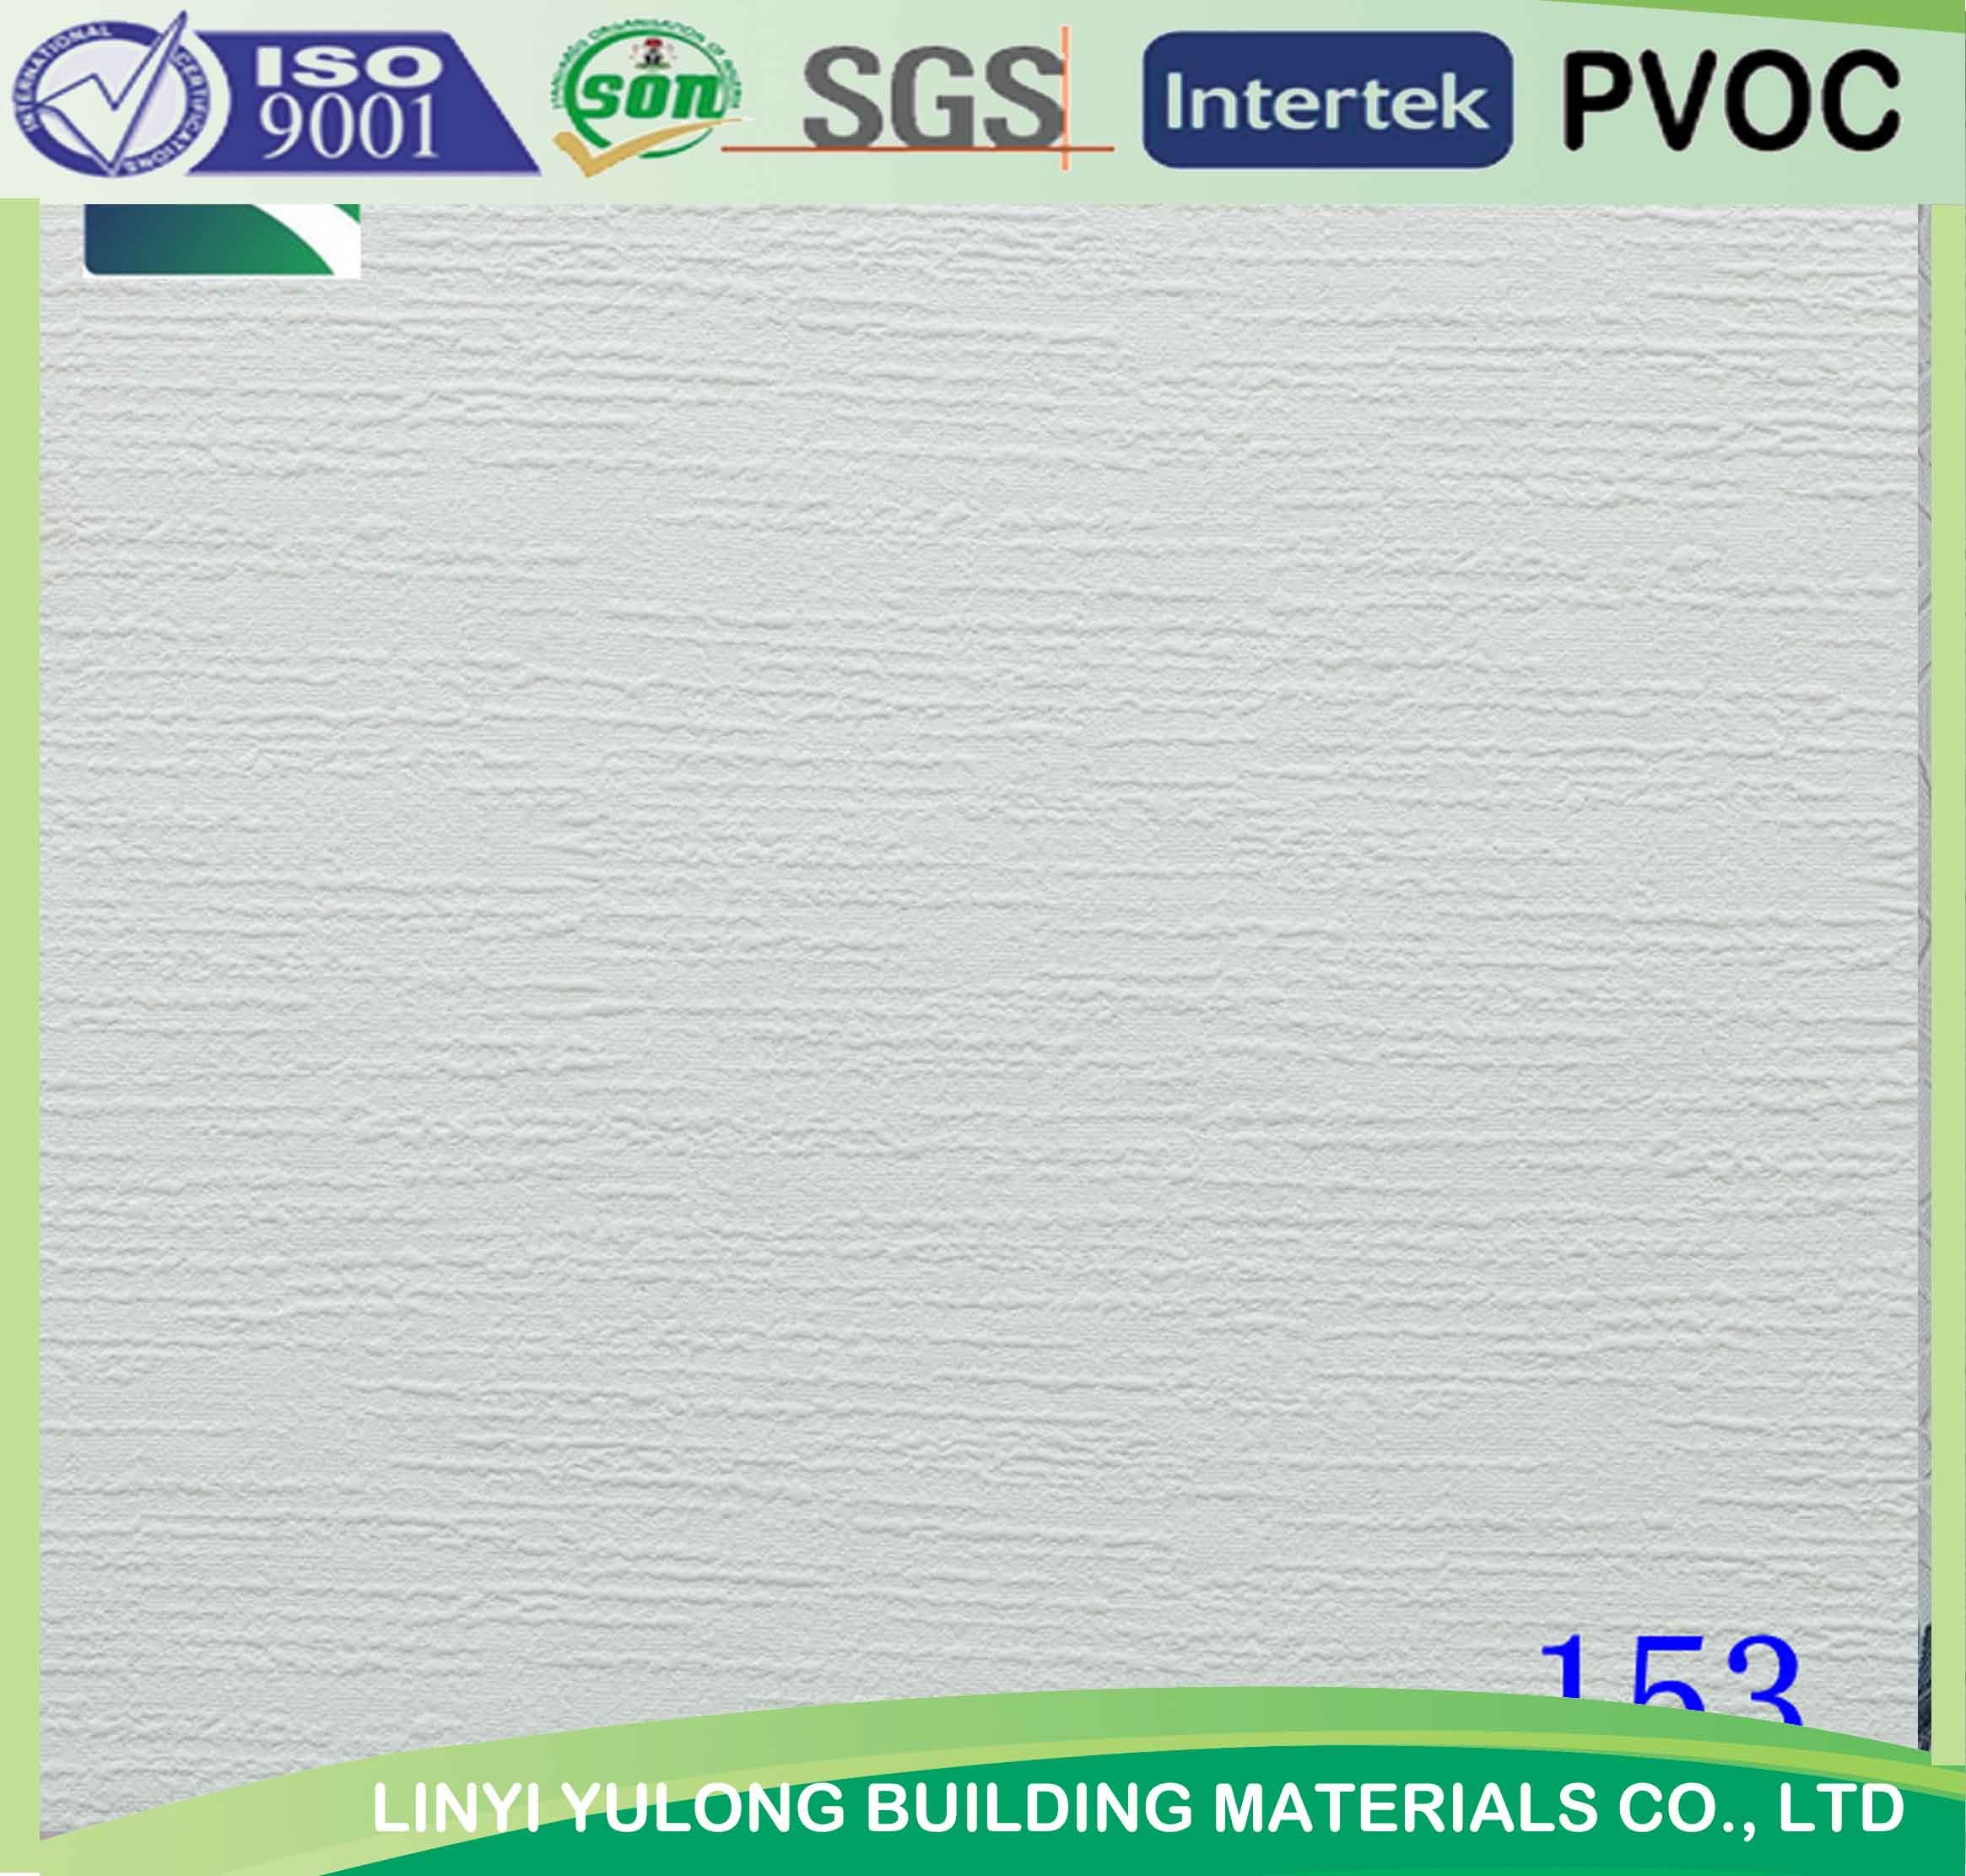 China pvc gypsum ceiling tile 153 photos pictures made in china pvc gypsum ceiling tile 153 dailygadgetfo Images